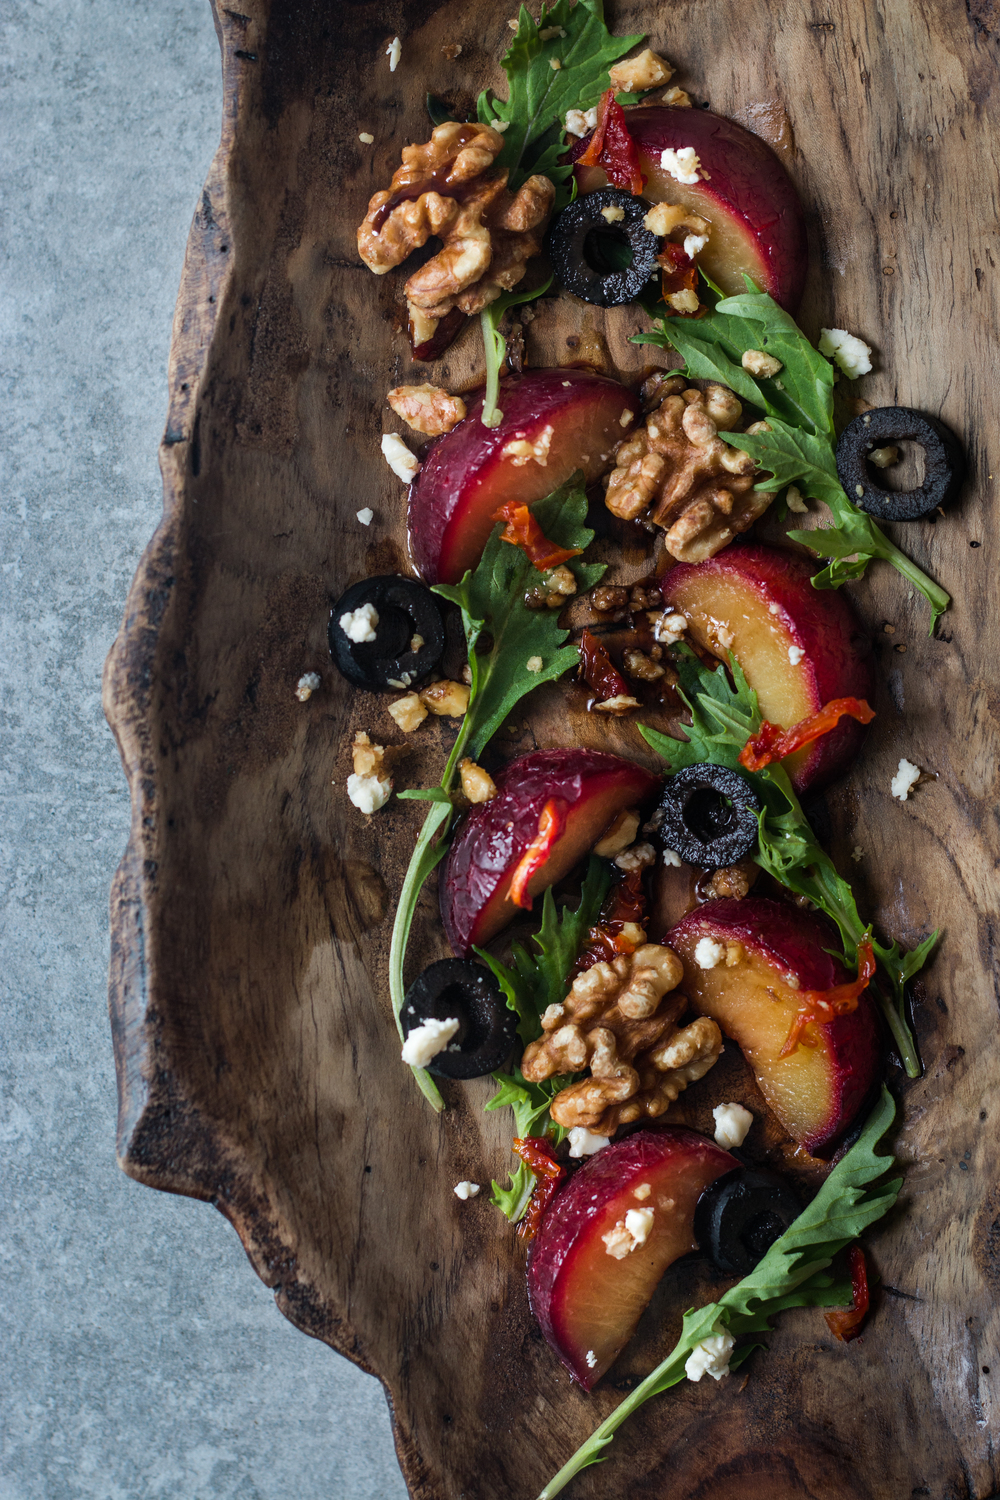 Spiced Poached Plum Salad w/ Soy Balsamic Dressing